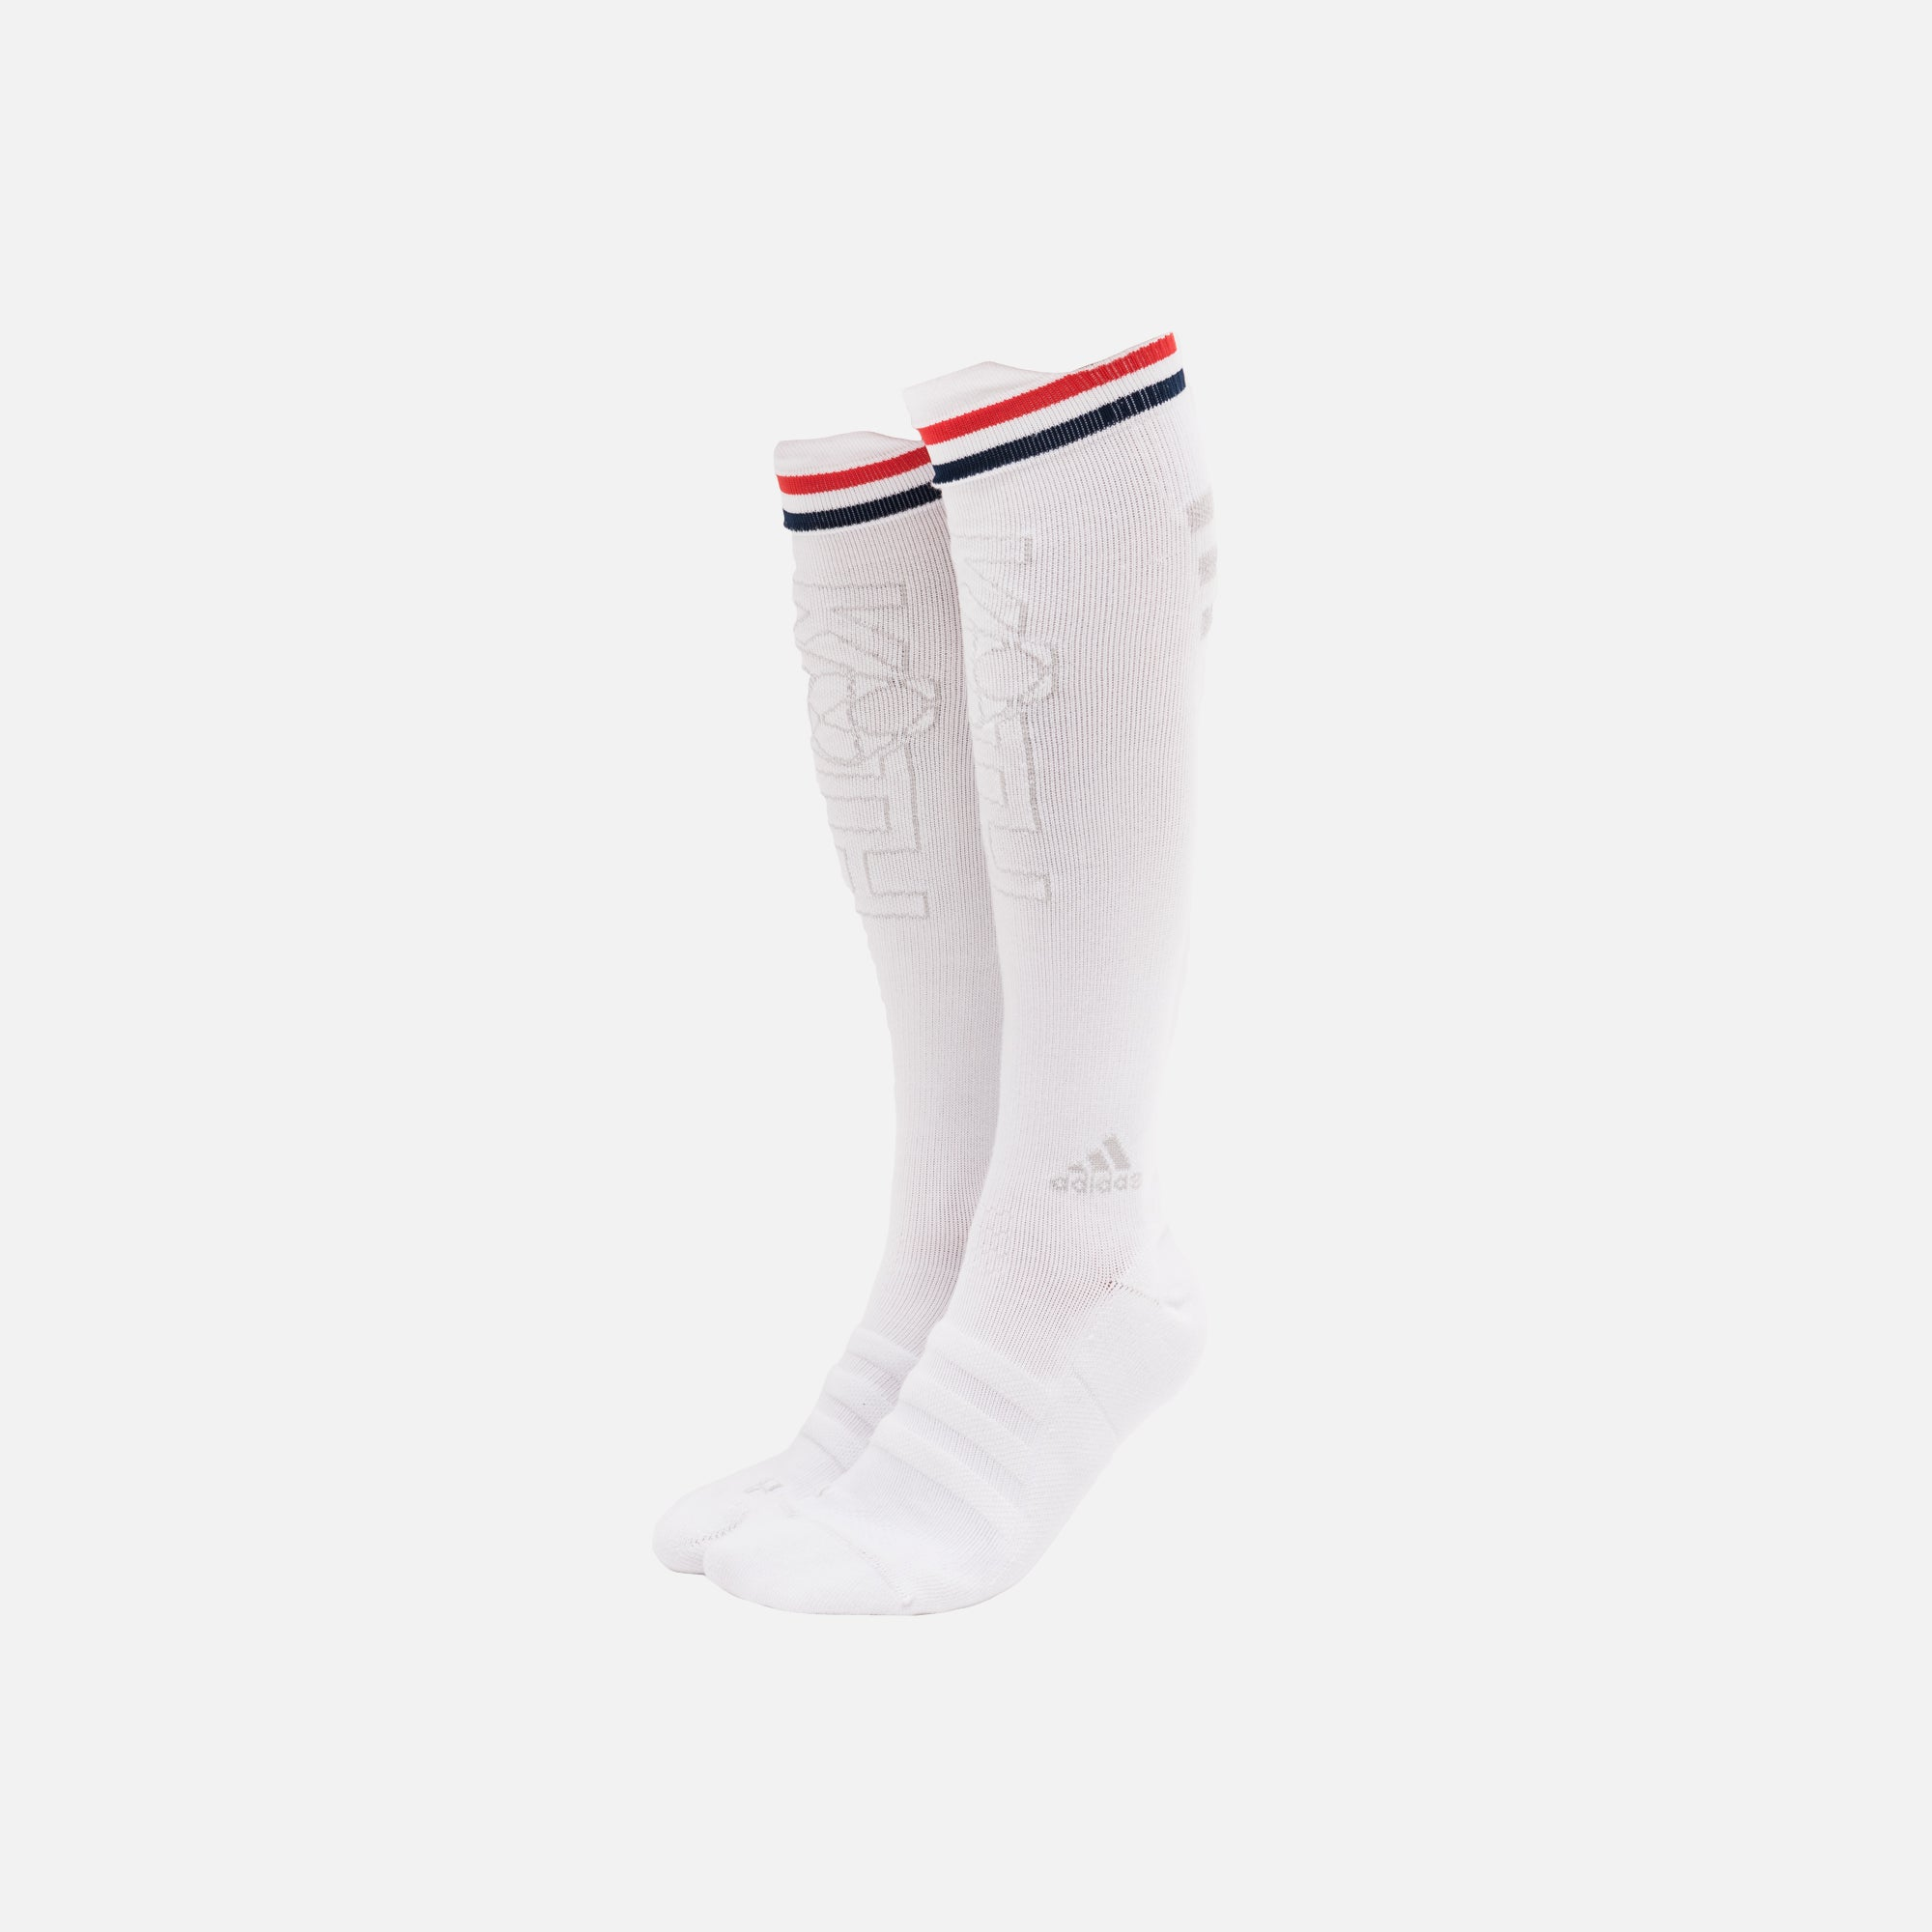 Kith x adidas Soccer Match Sock - White